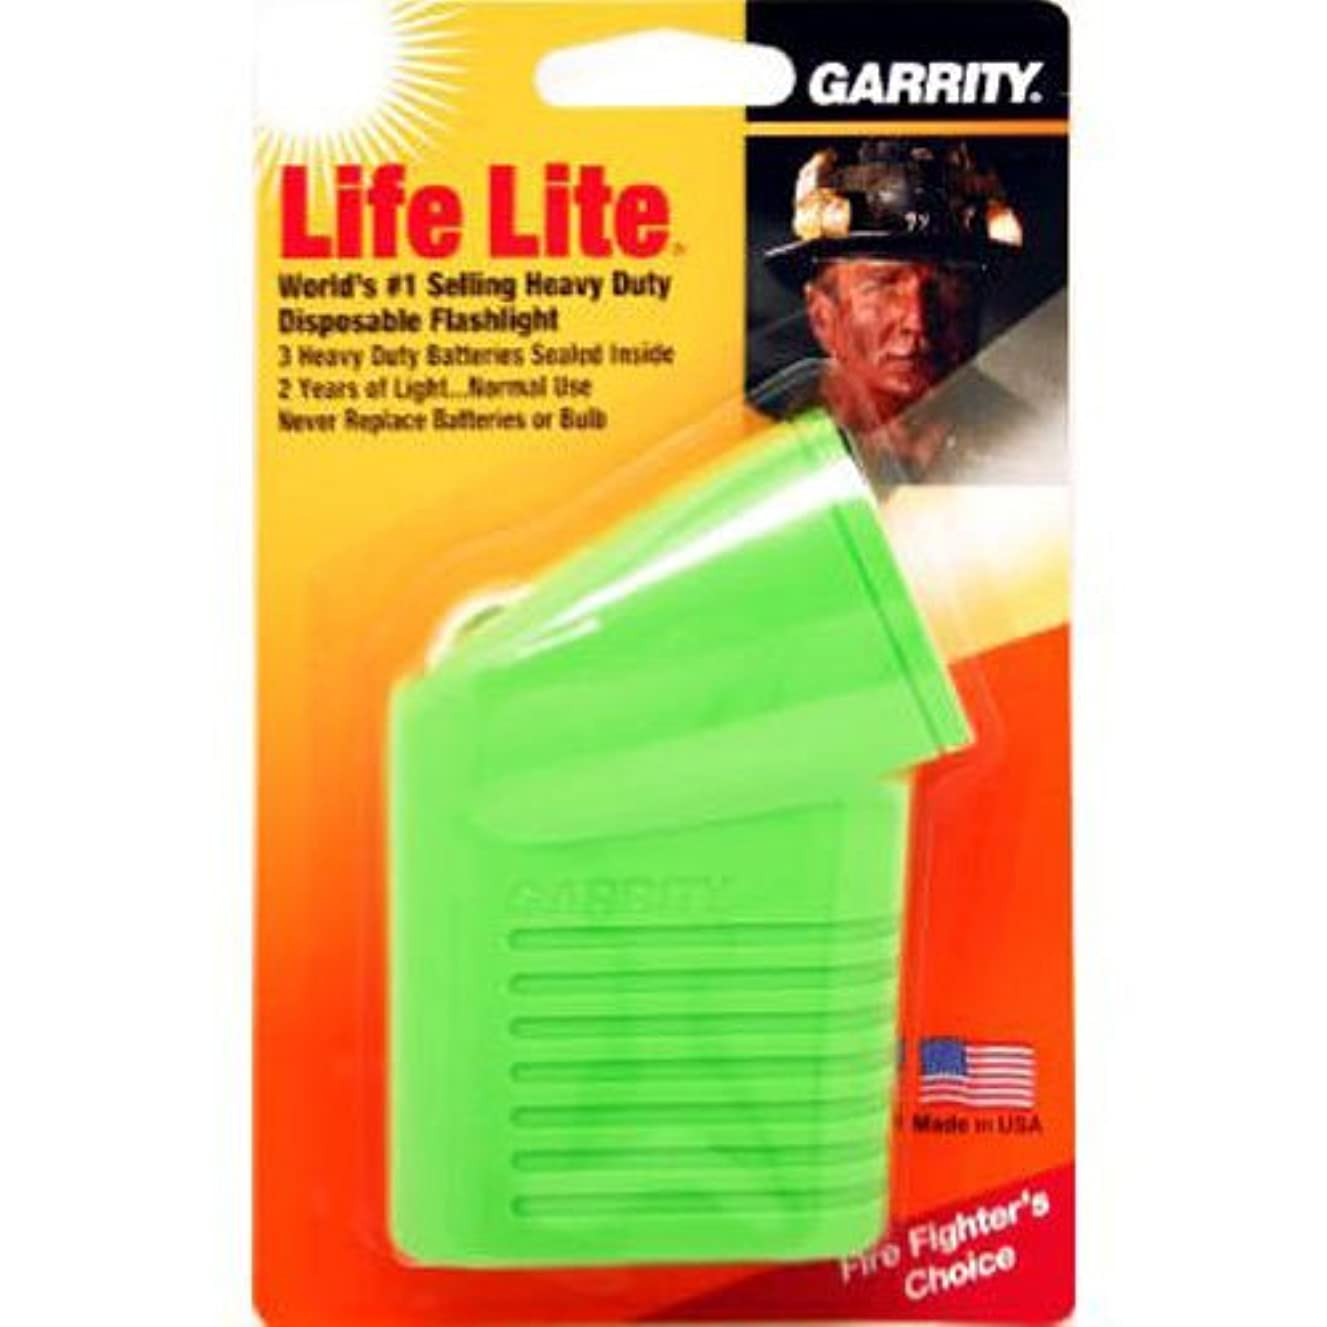 Garrity 65-015 Life Lite Flashlight (Colors may vary)